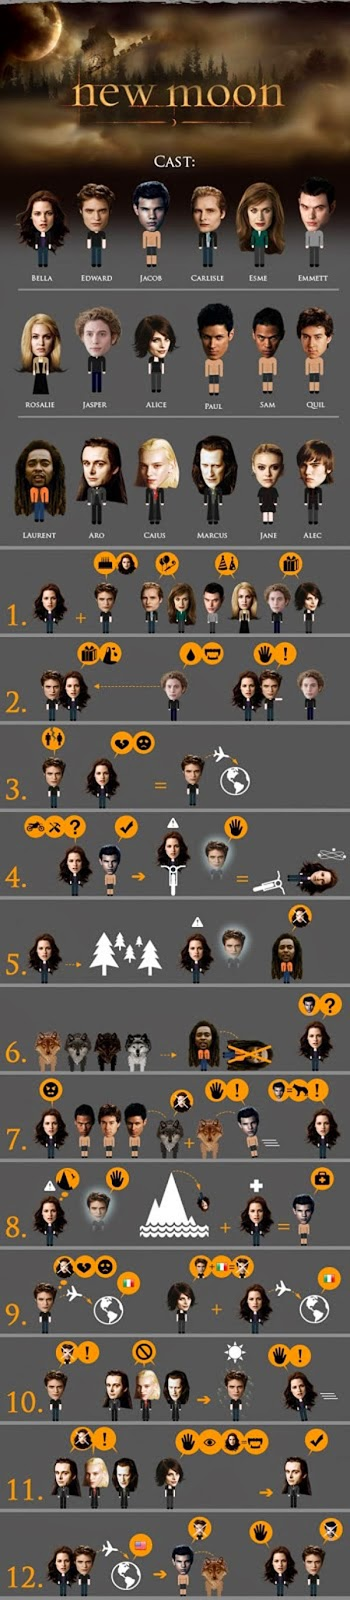 Infografía-The-Twilight-Saga